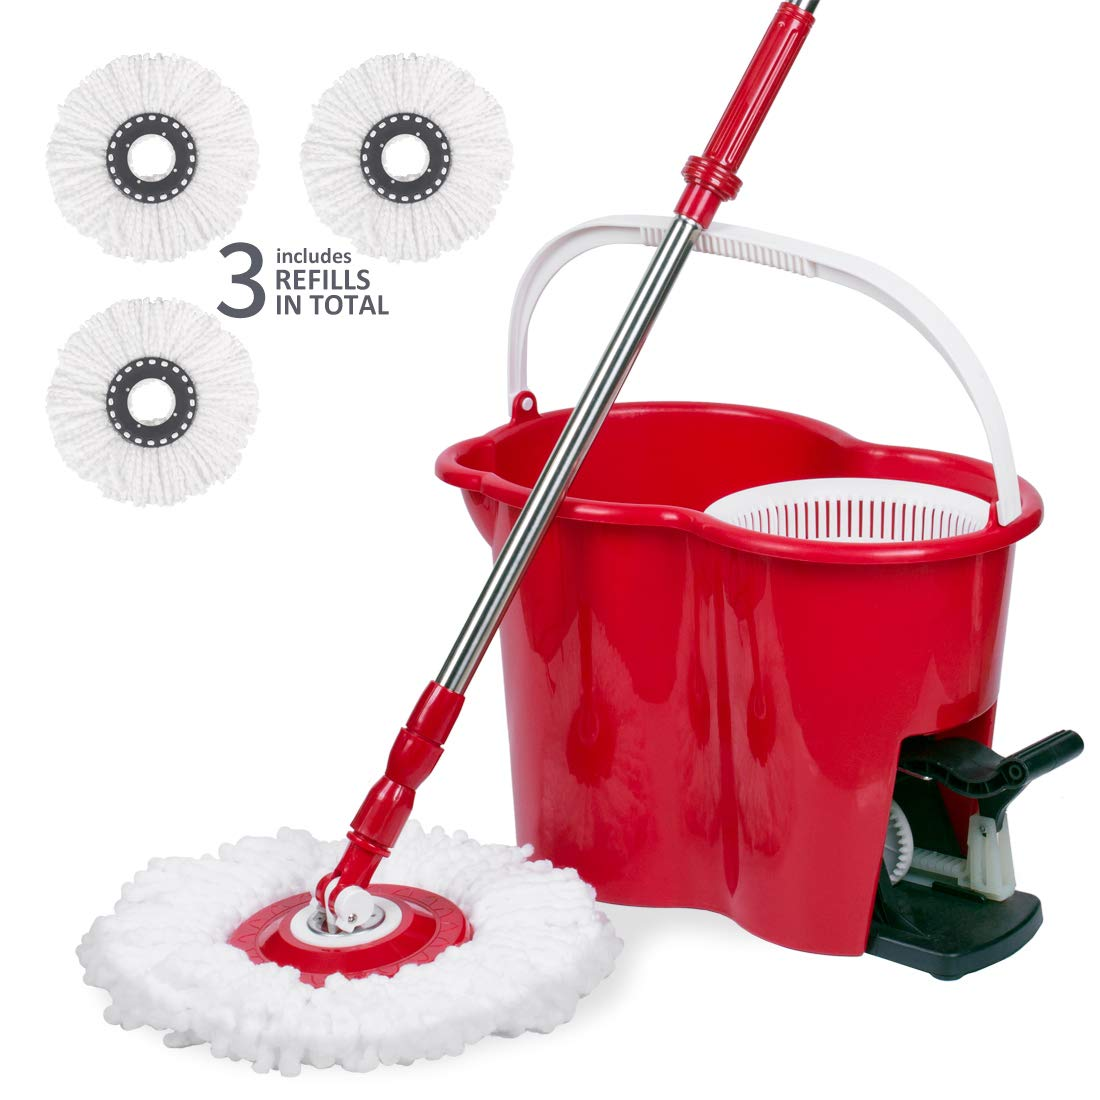 Spin mop with Bucket and Foot Pedal, Self Washing & Drying, 360° Spinning Mop Head for Easy Floor Cleaning, Thickened Sturdy Stable Bucket with Carry Handle, 3 Mop Heads Included, Red